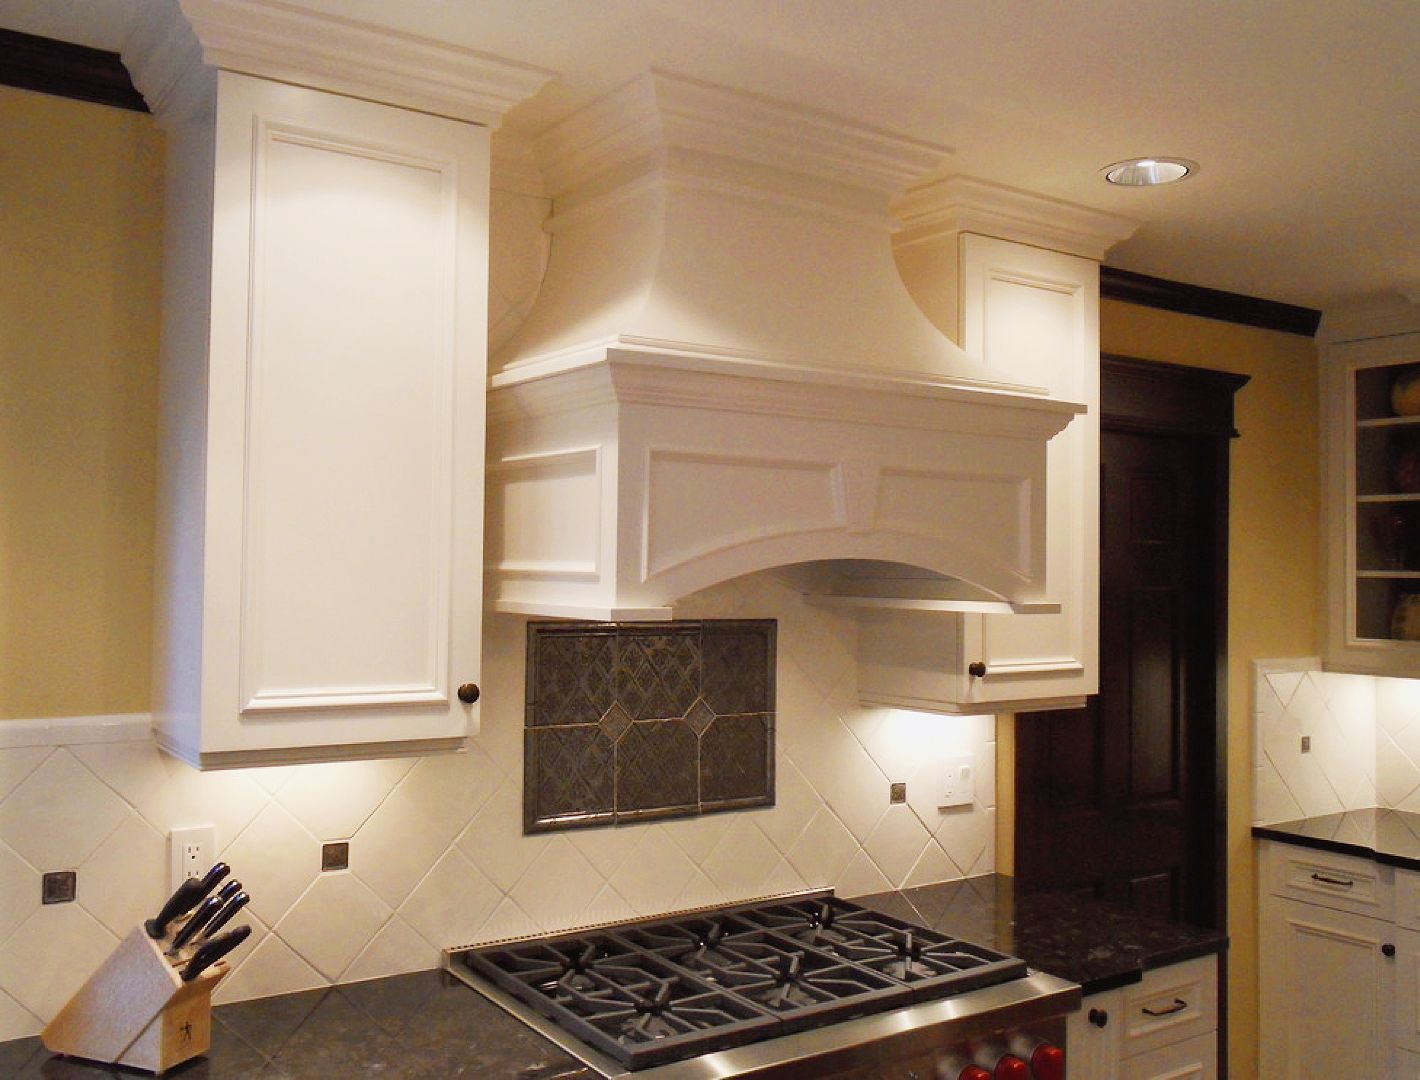 Custom Cabinets Kitchen Design Kitchen Www Keystonekitchens Biz Remodeling Contractors Kitchen Remodel Kitchen Design